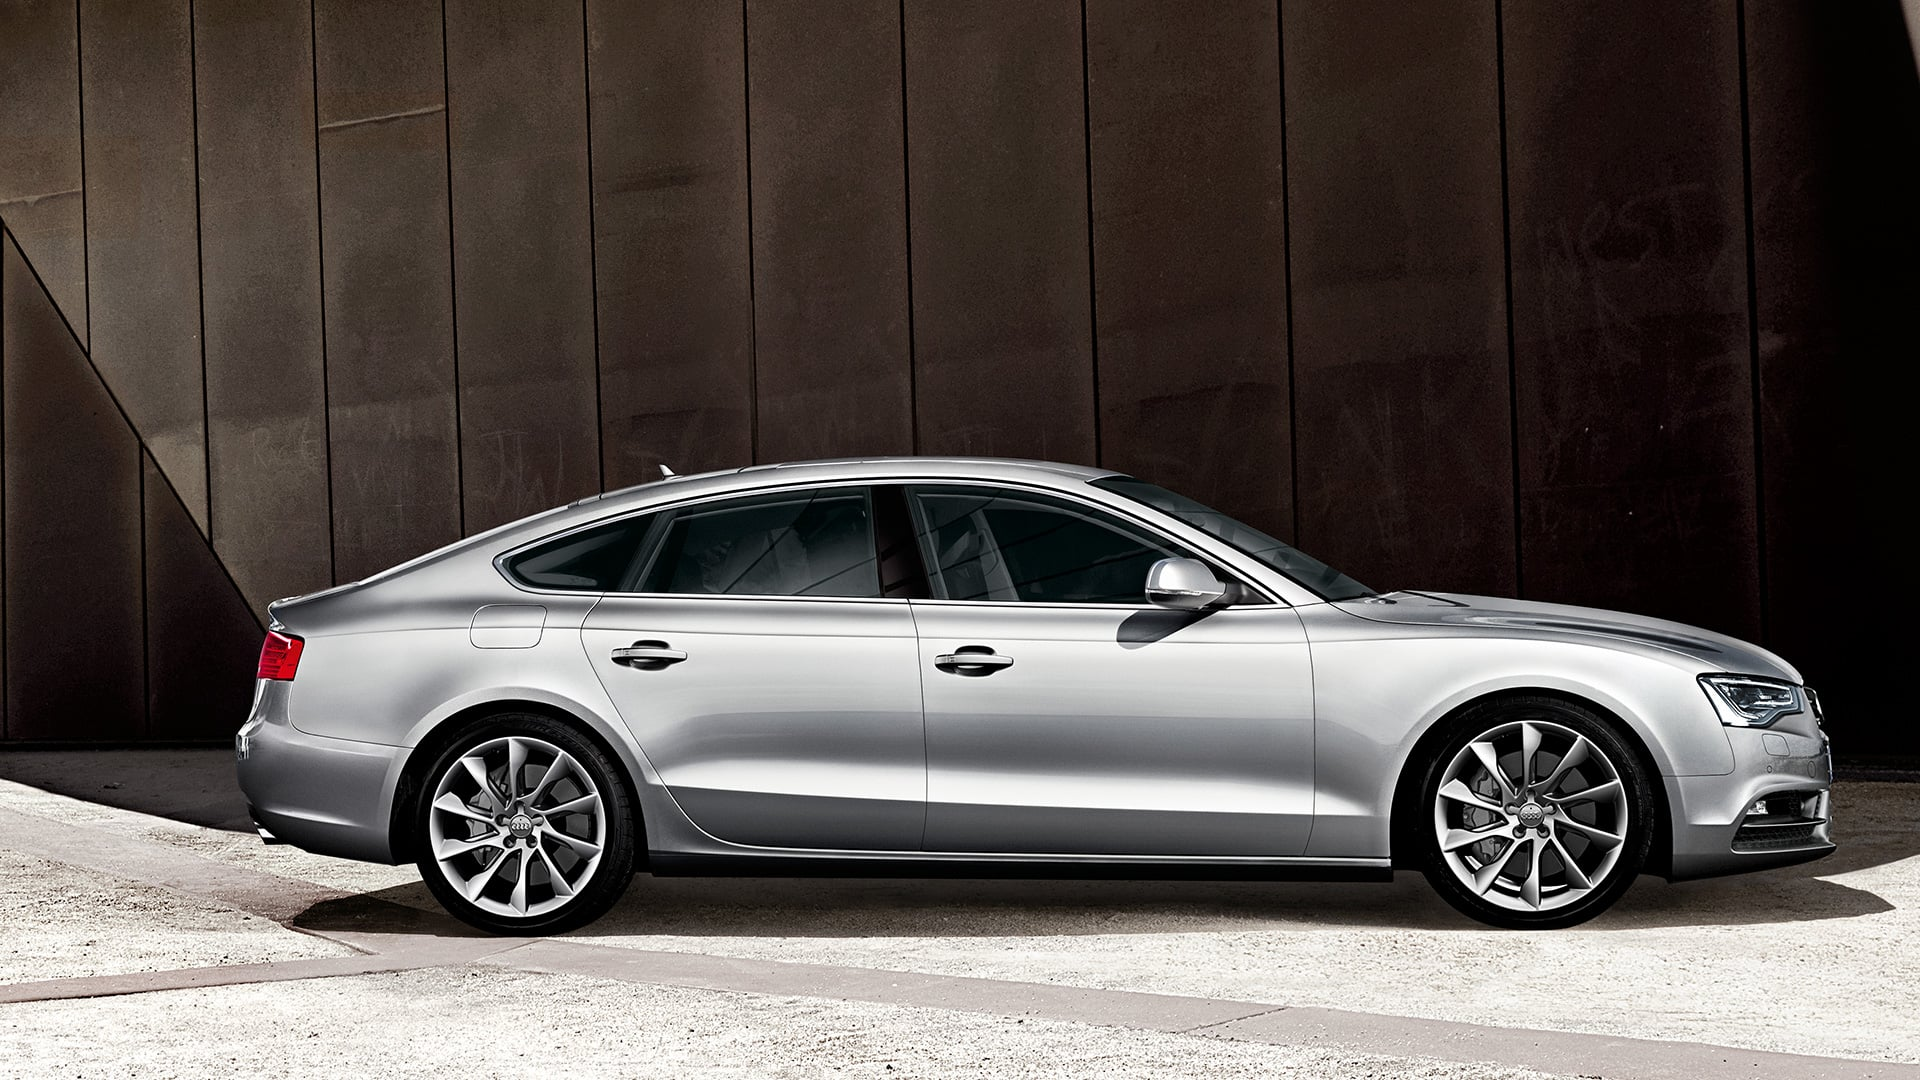 The new A5 Sportback A5 Audi Pakistan